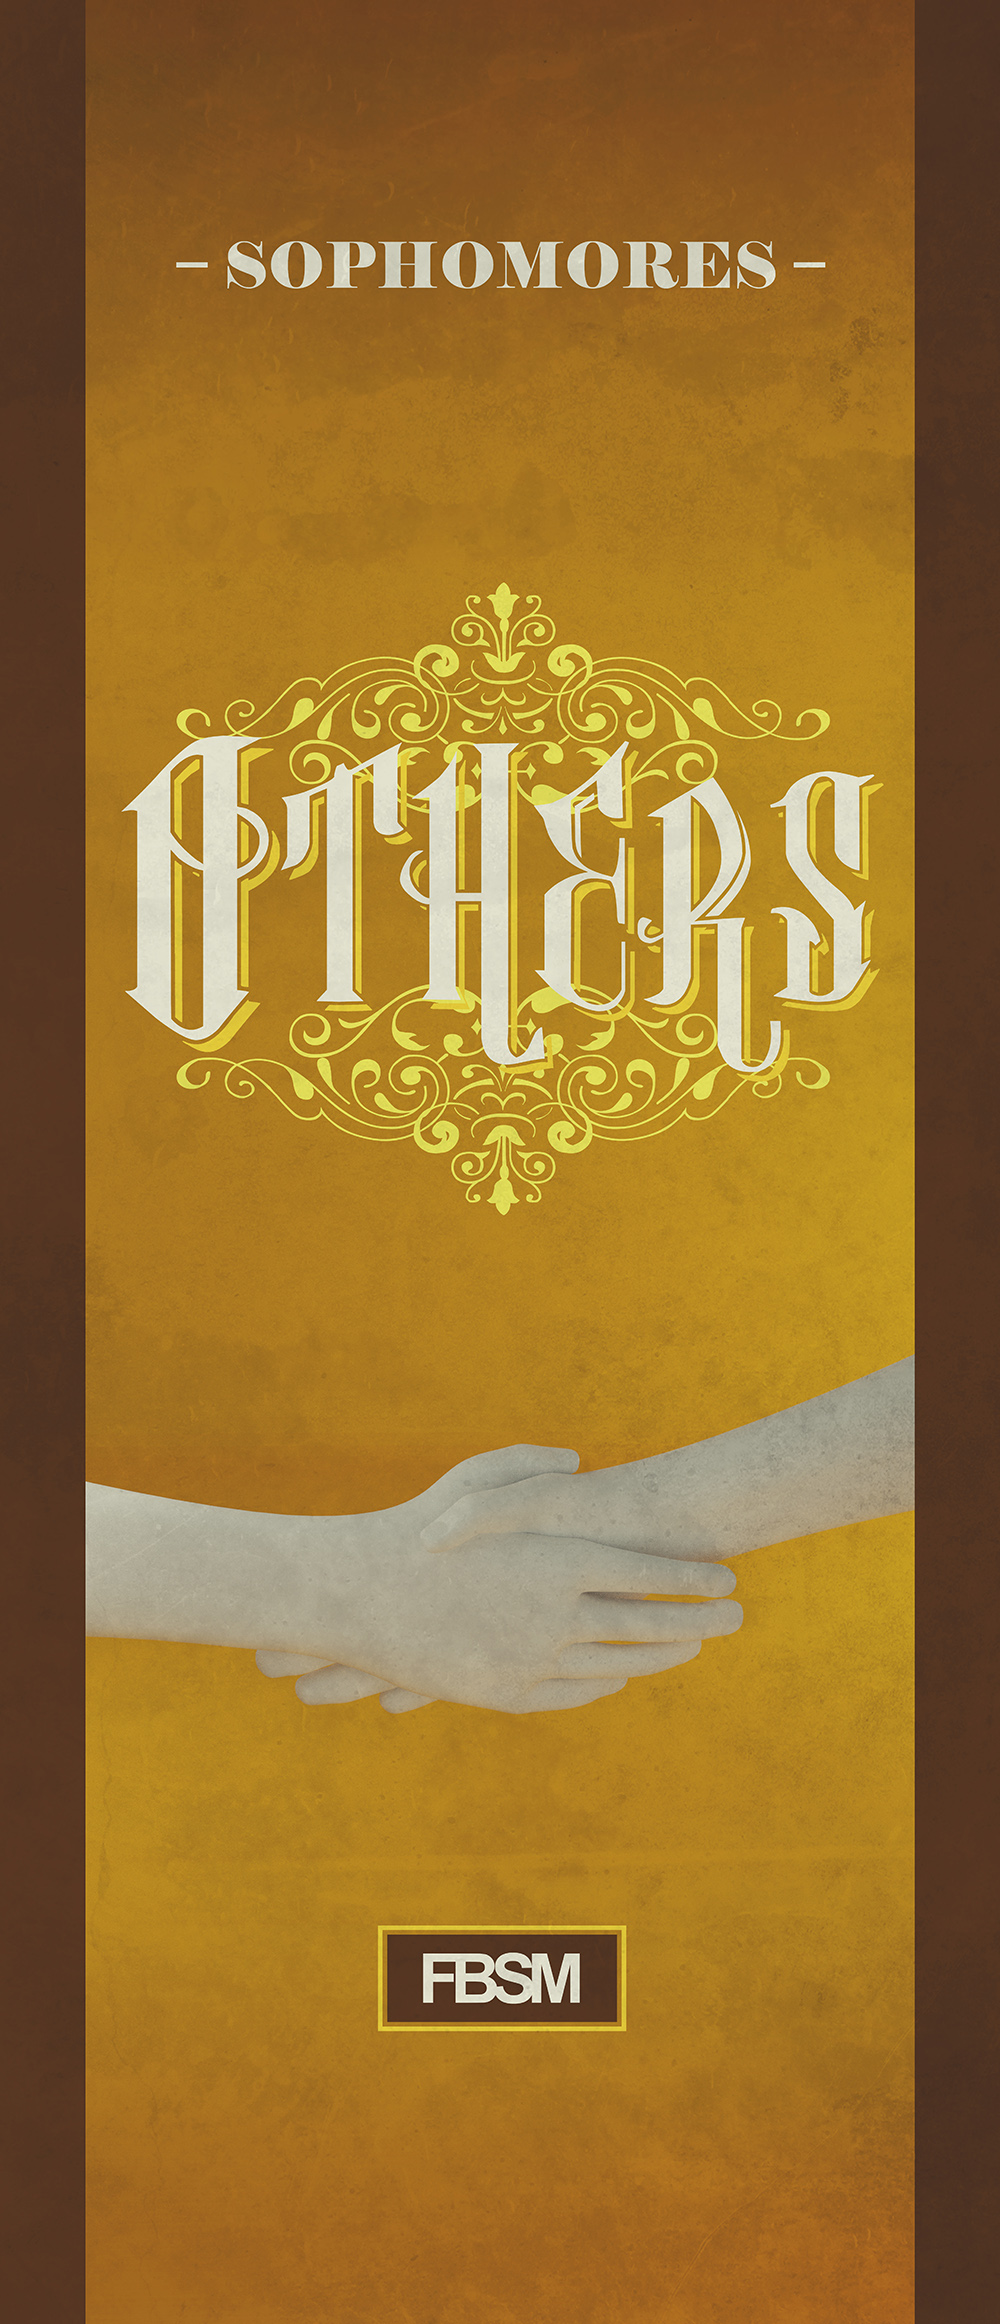 Poster  - Others 2.jpg